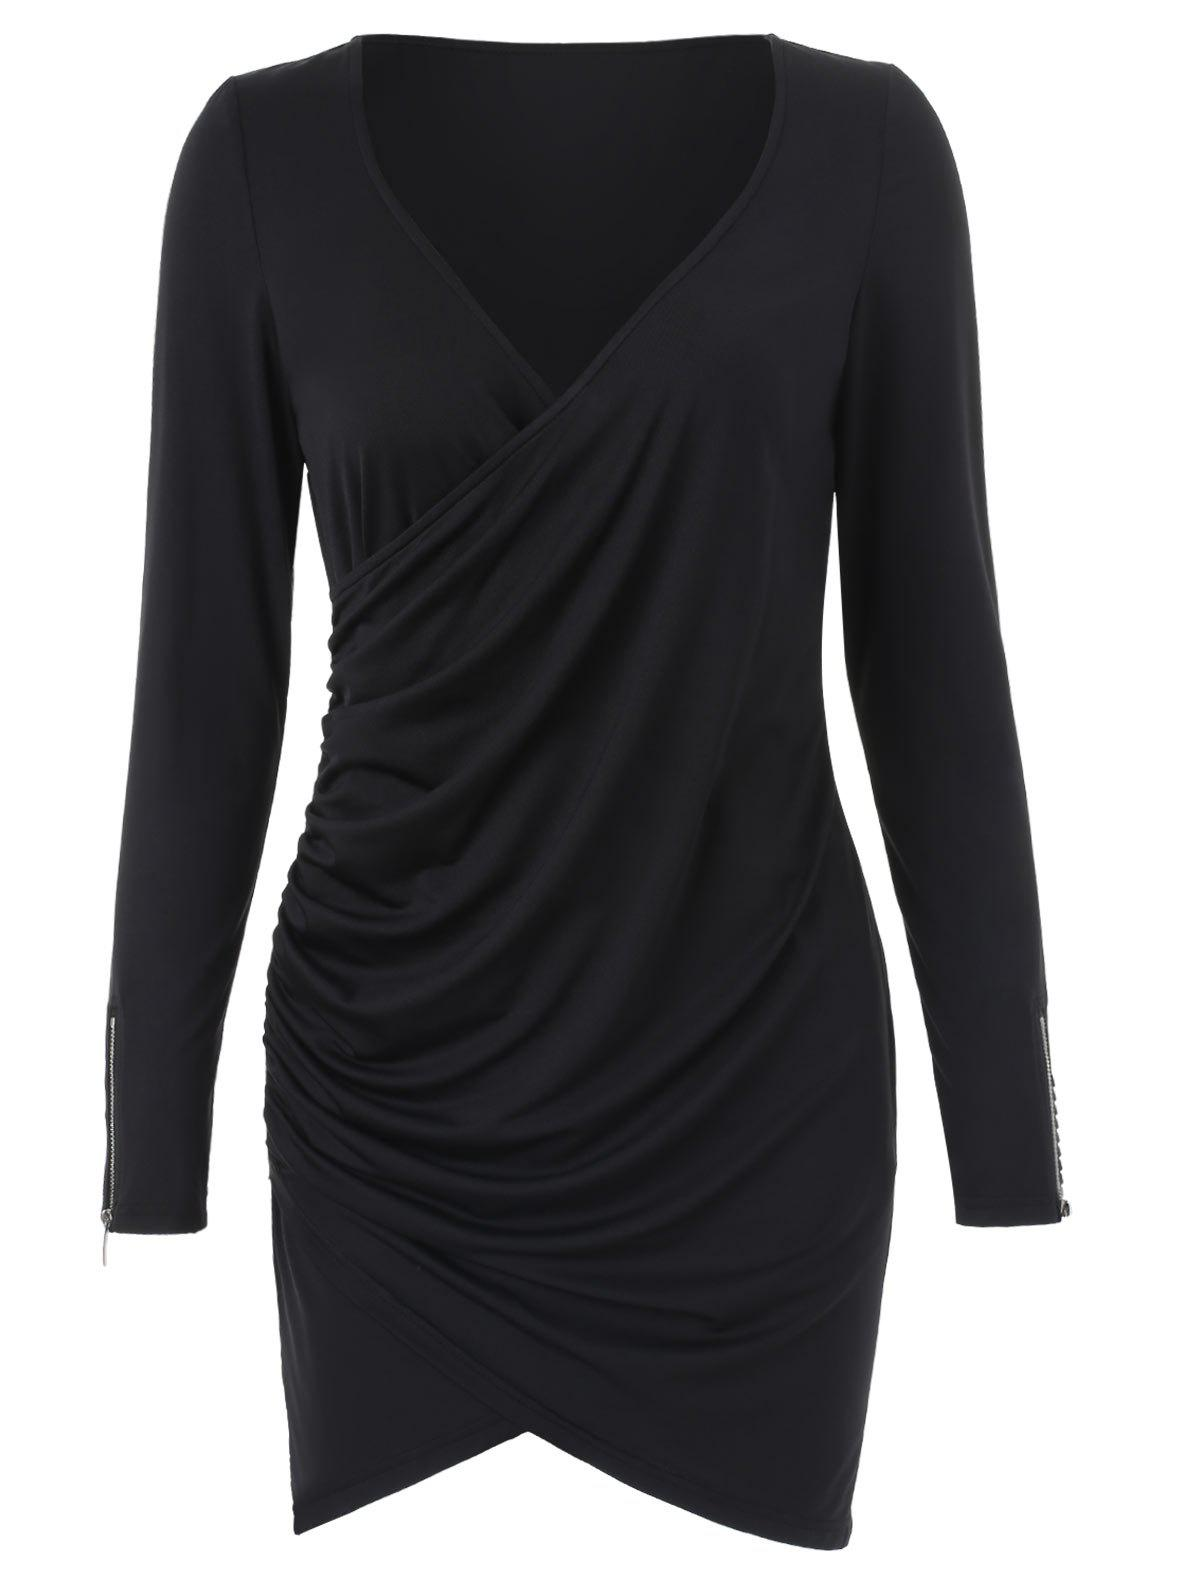 Long Sleeve Ruched Bodycon Dress with Zipper - BLACK M